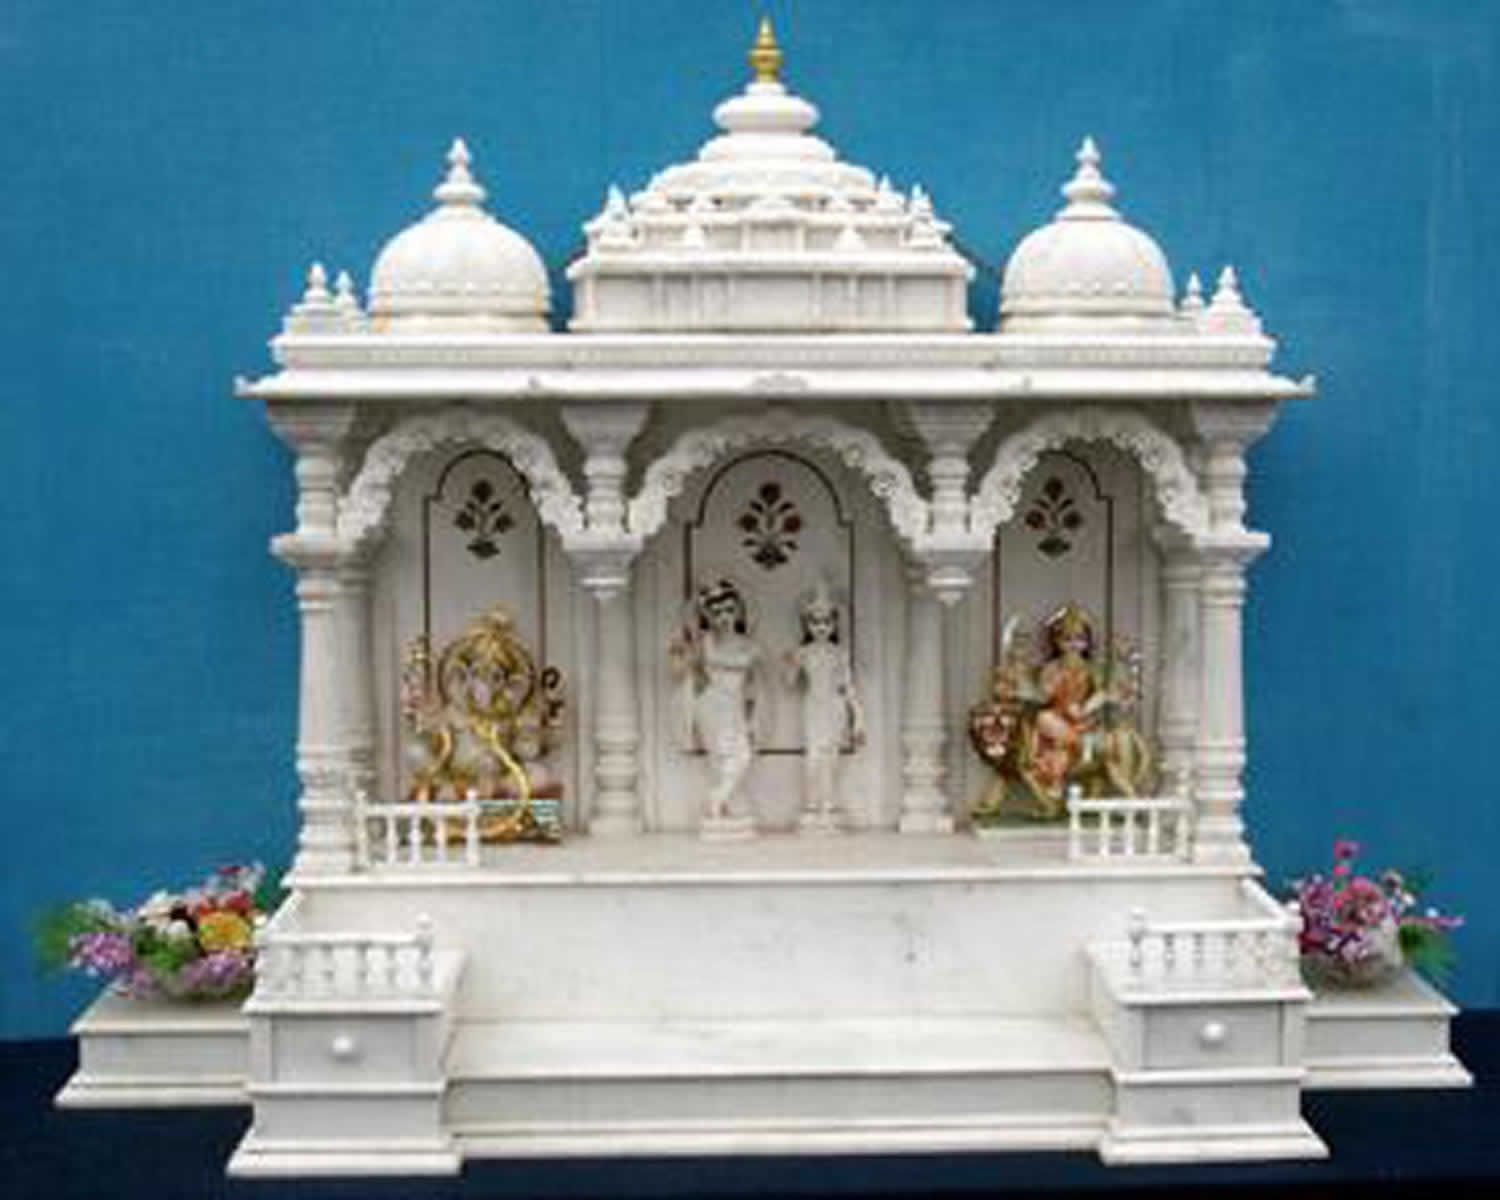 Merveilleux Marble Temple Design For Home Indian Home Mandir   Impending.co | Pinterest  | Temple, Marbles And Puja Room